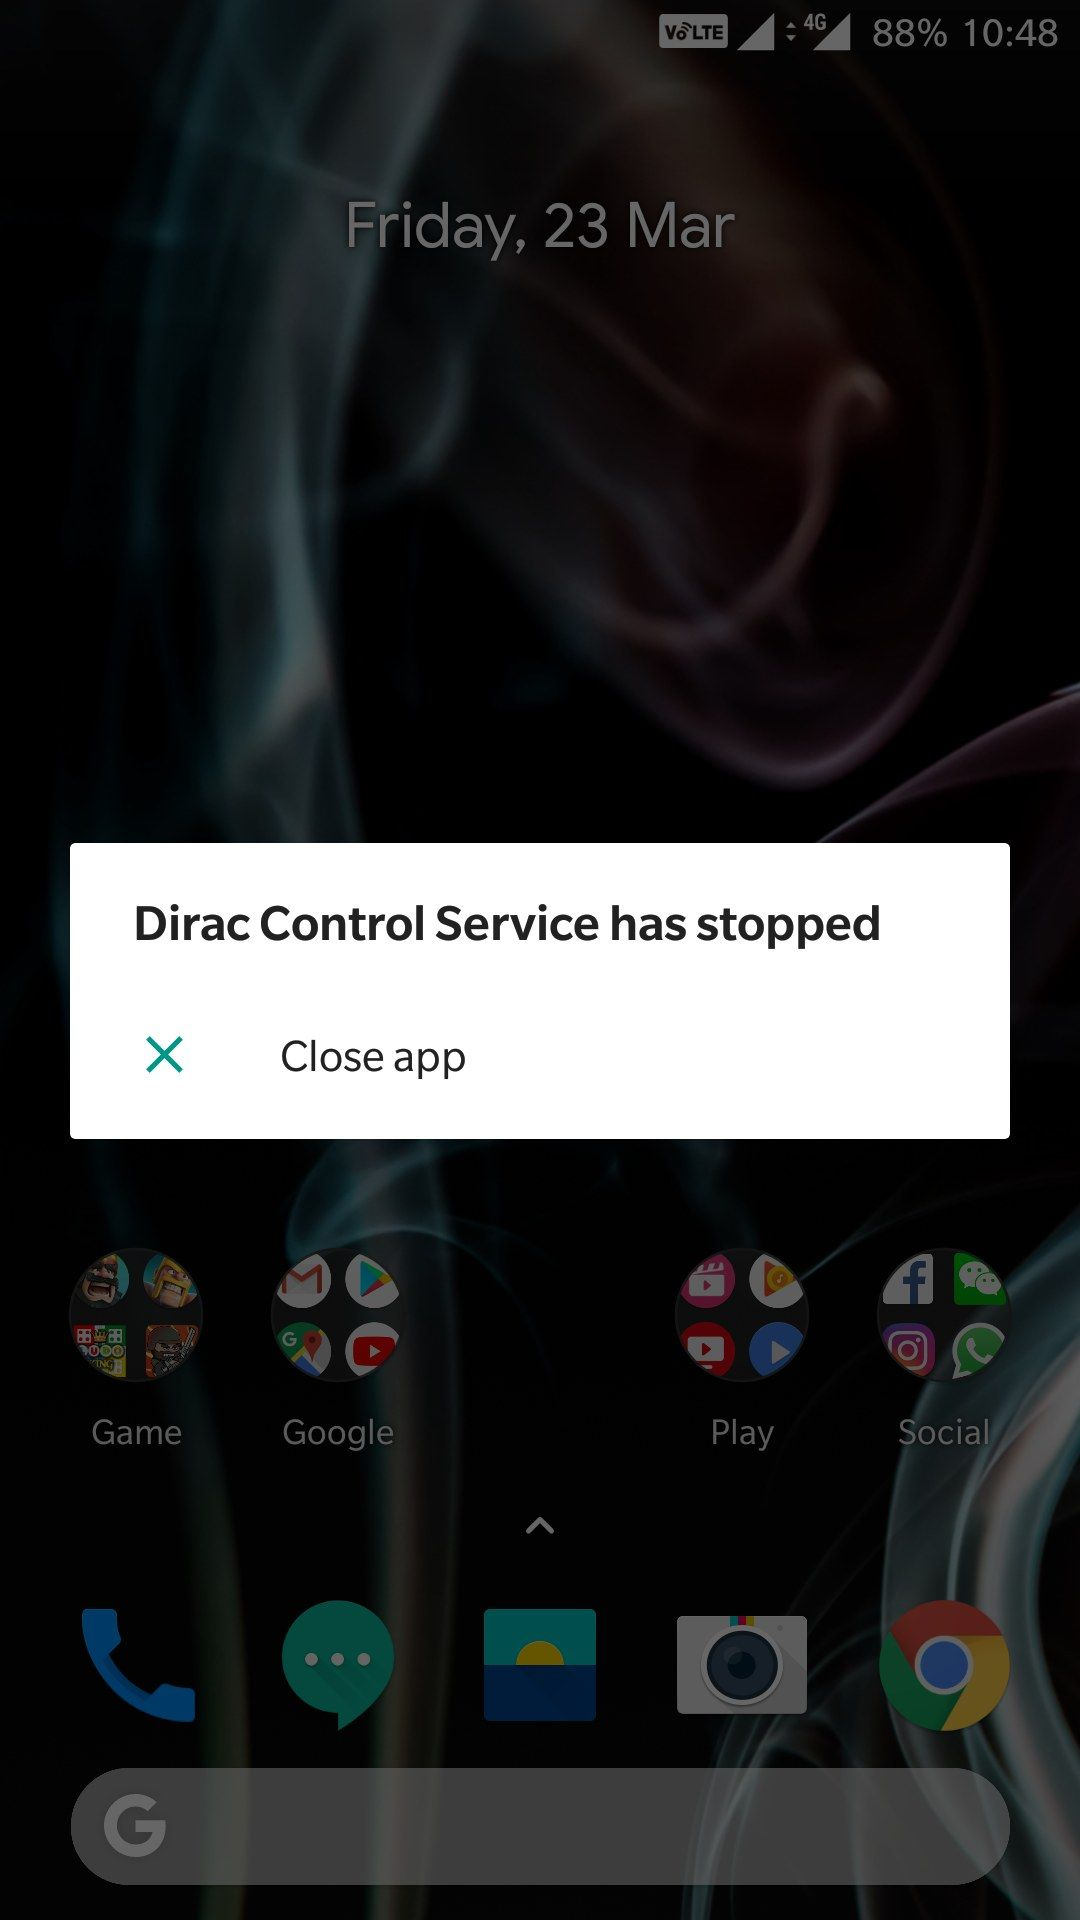 DIRAC CONTROL SERVICE HAS STOPPED - OnePlus Community